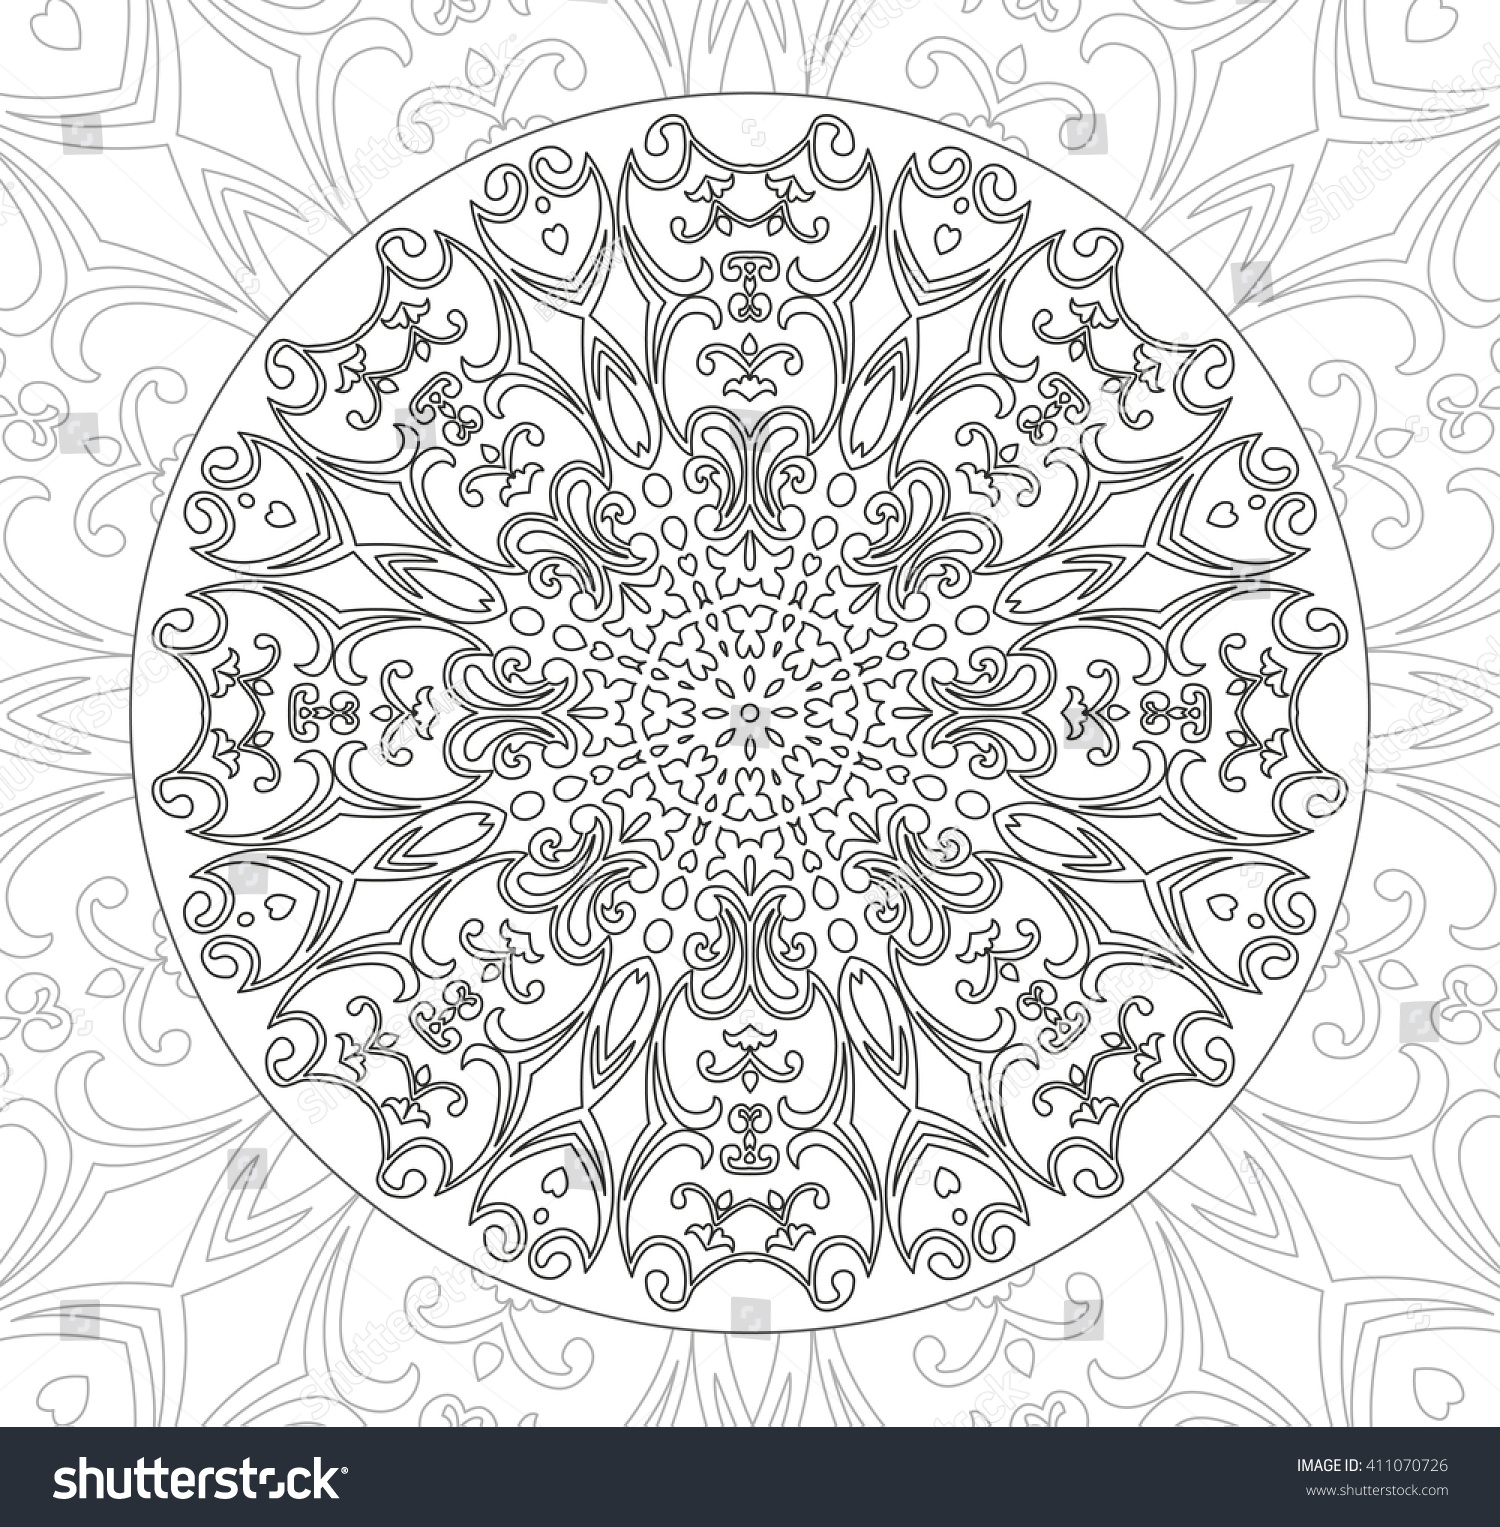 11 Free Printable Adult Coloring Pages | Abstract coloring pages ... | 1527x1500